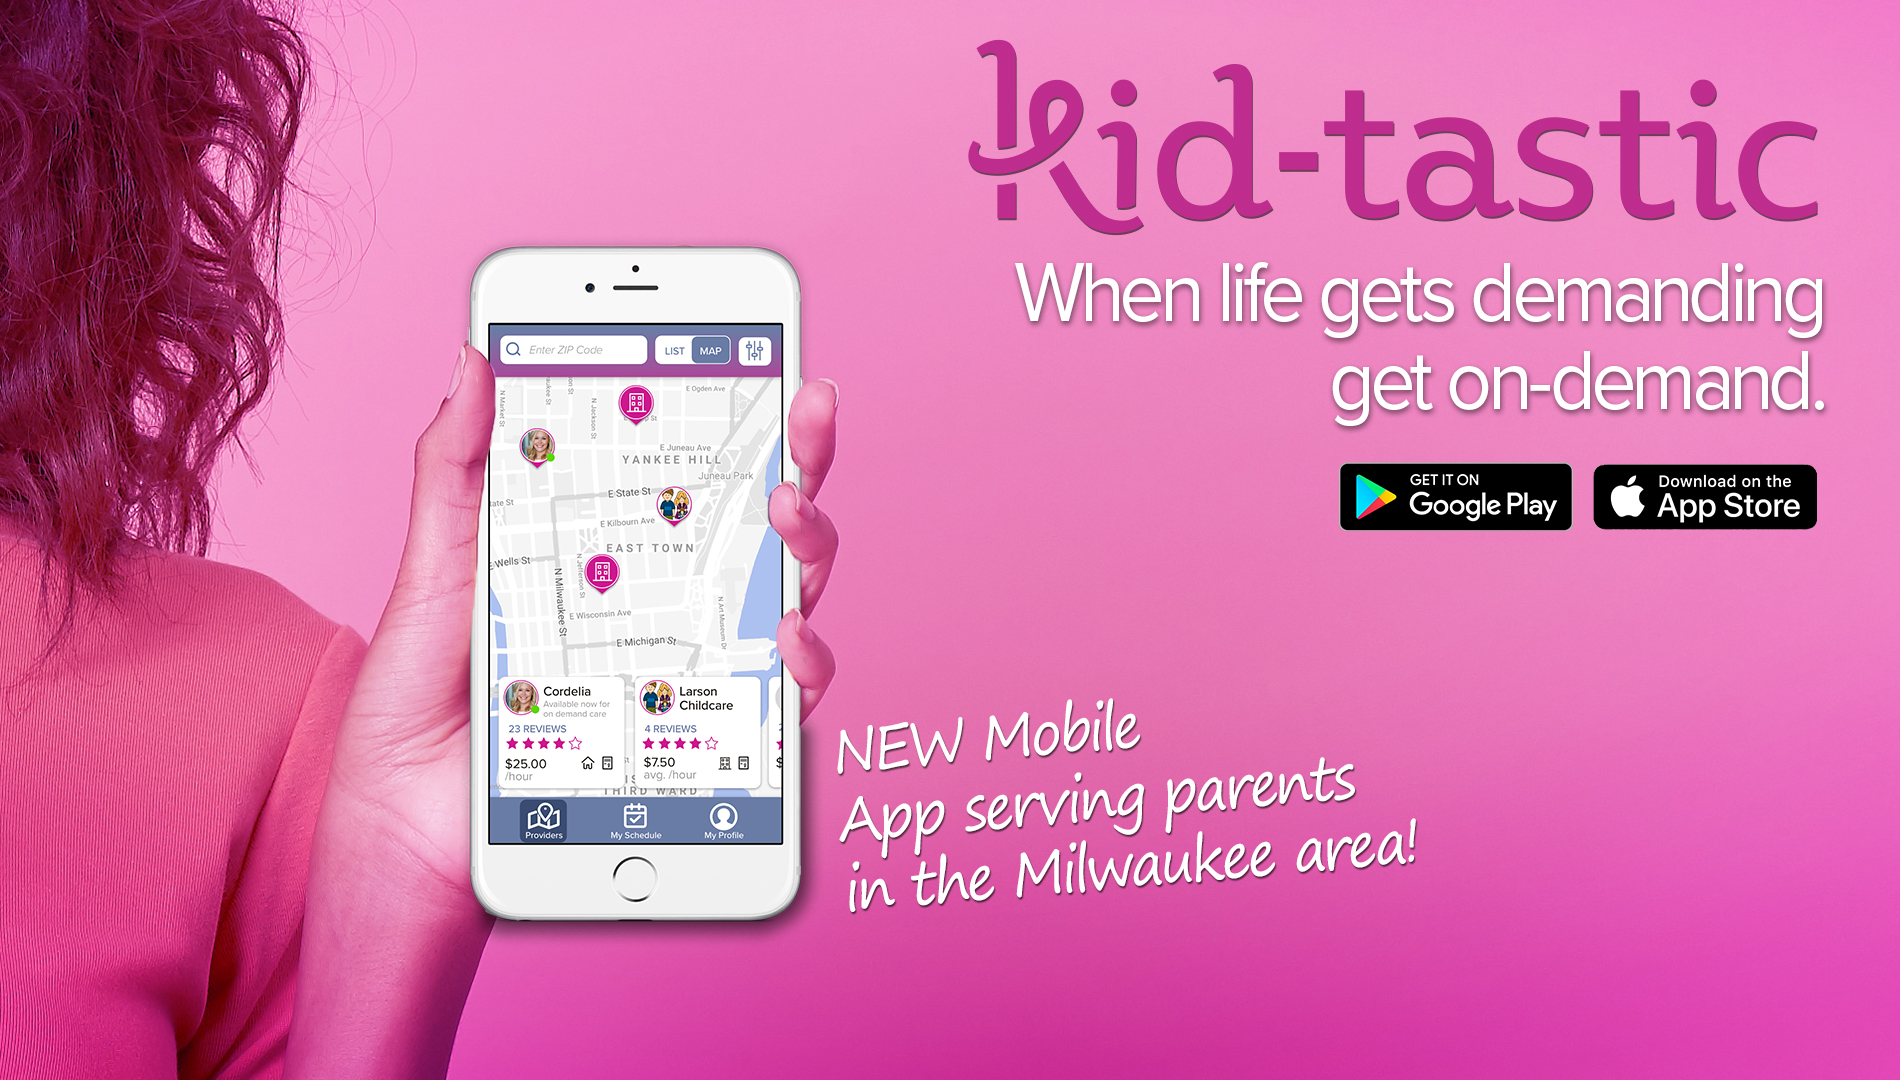 New Child Care App